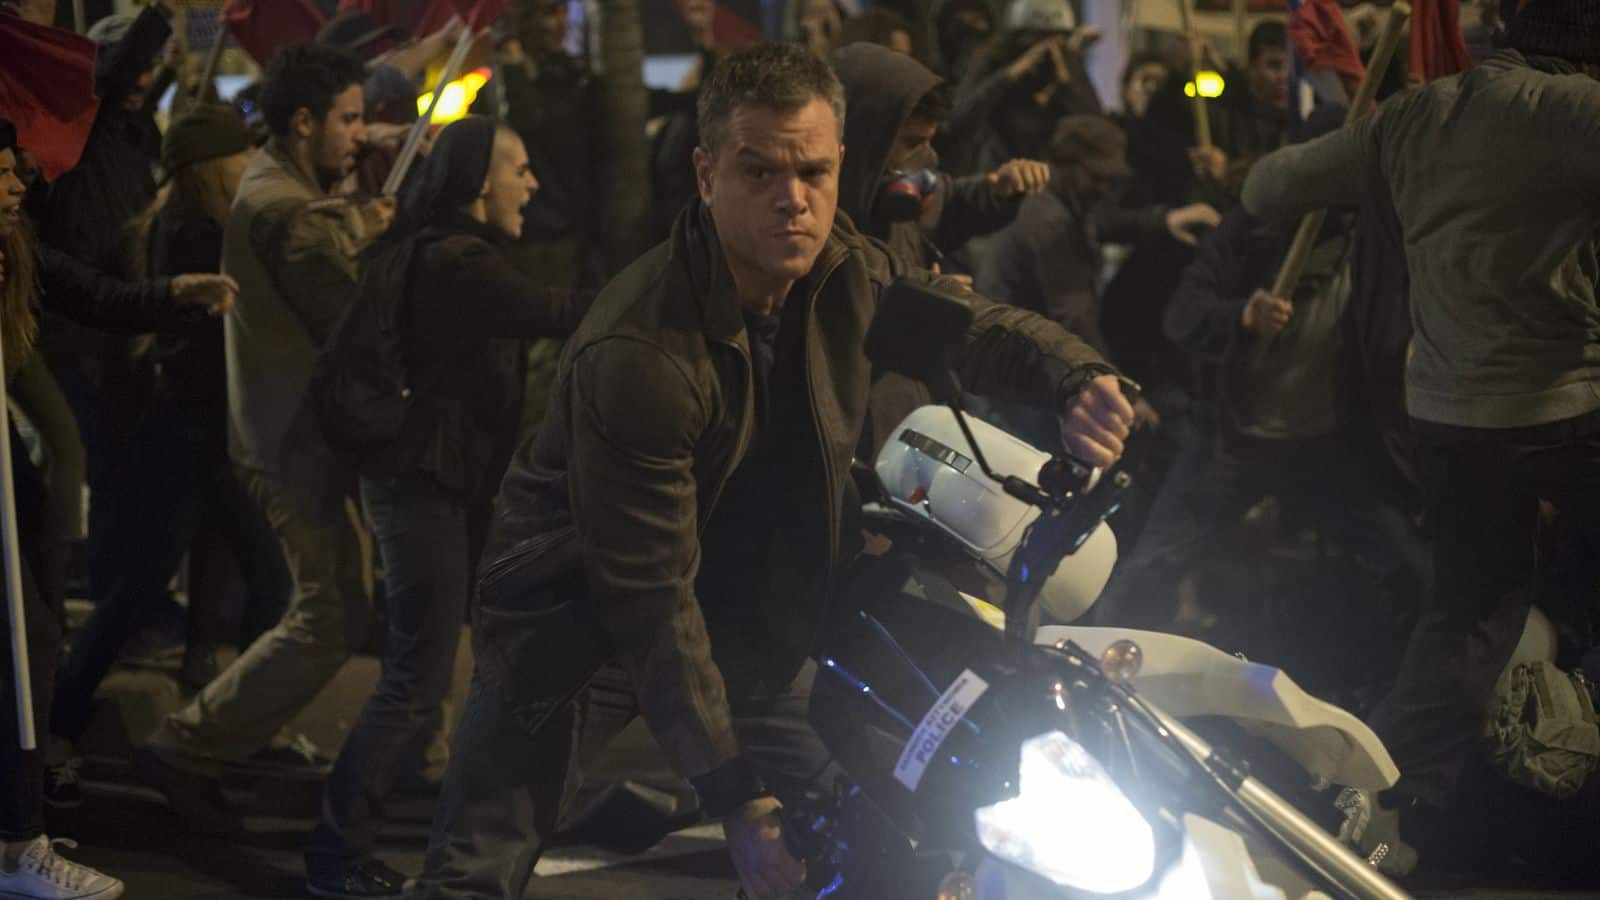 jason-bourne-2016-film.0.0